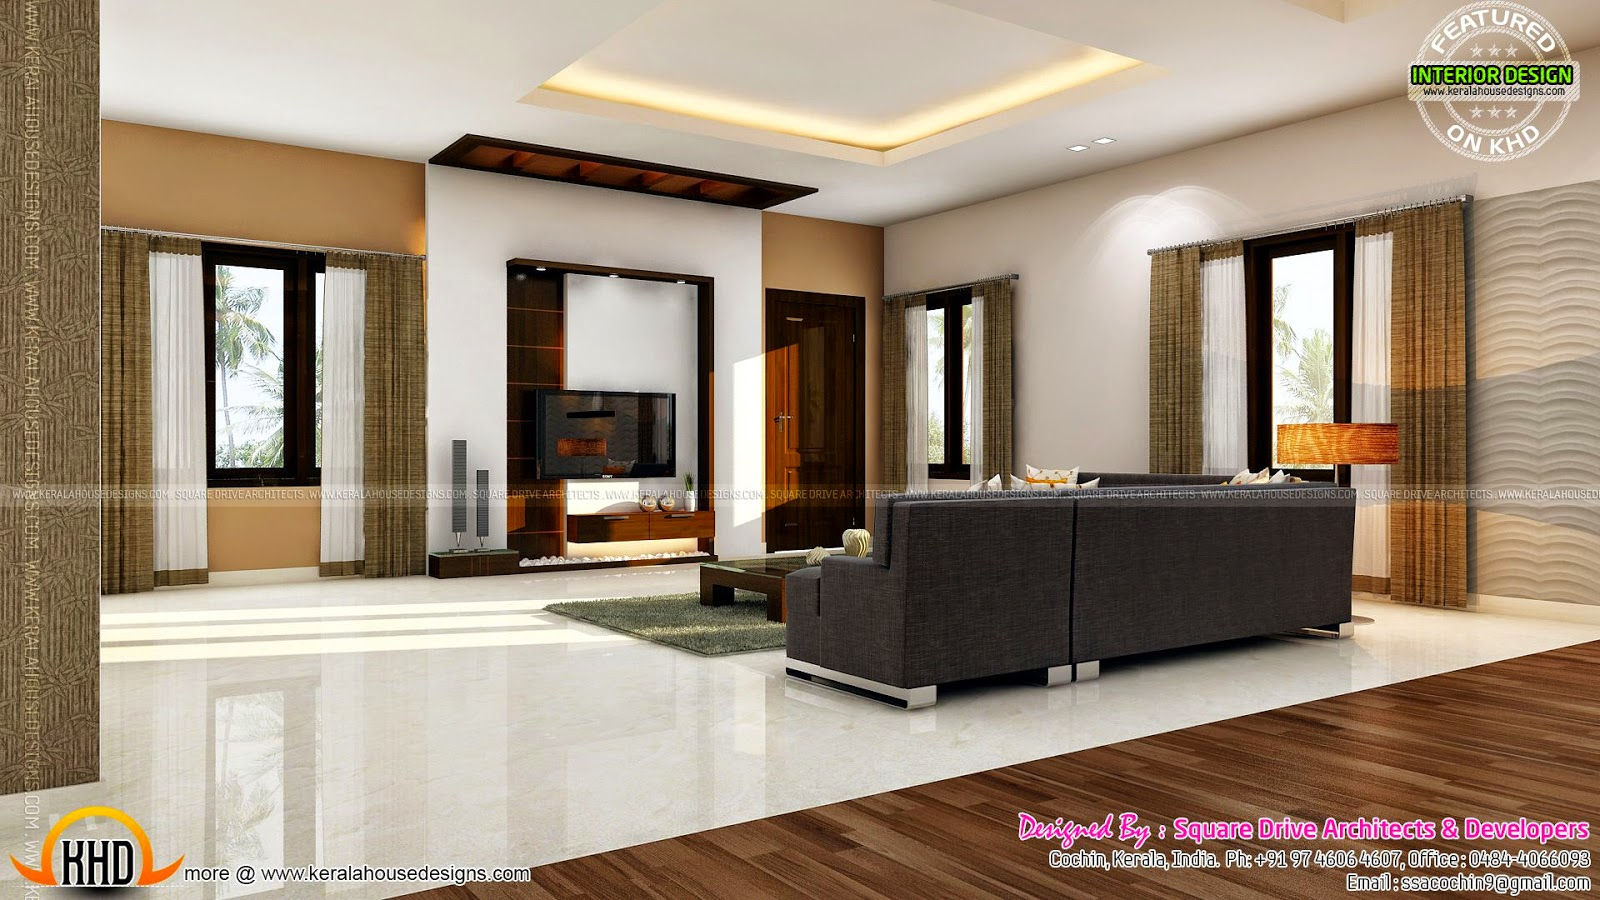 Bedroom and living interior designs kerala home design for Kerala home interior